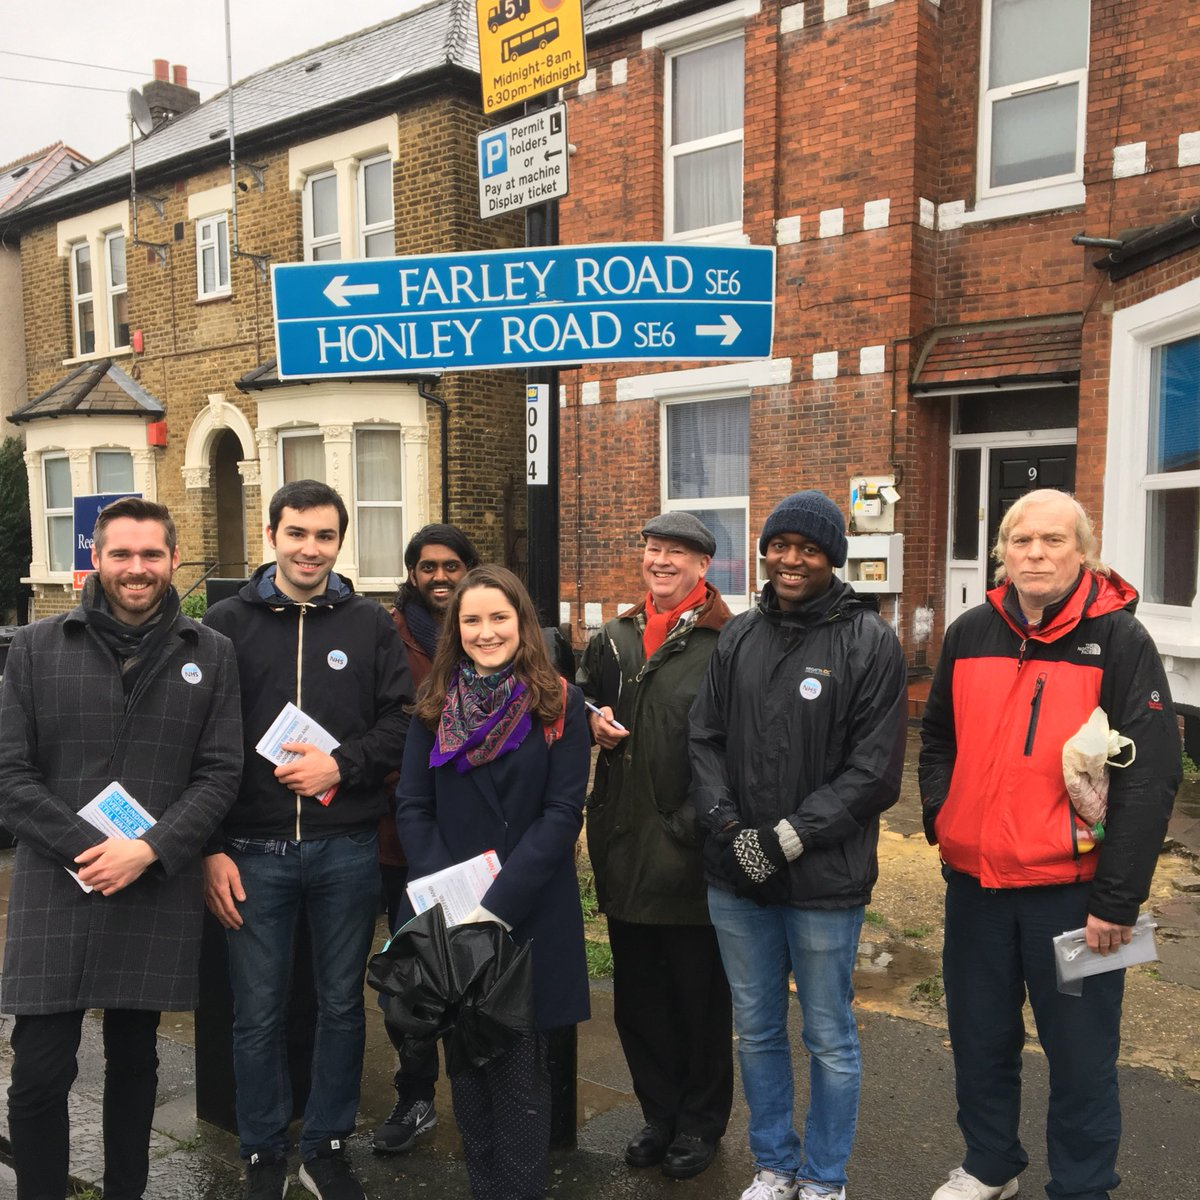 RT @tomcopley: First #labourdoorstep of 2017 in Rushey Green, despite the rain https://t.co/kZ2qMHvOUO